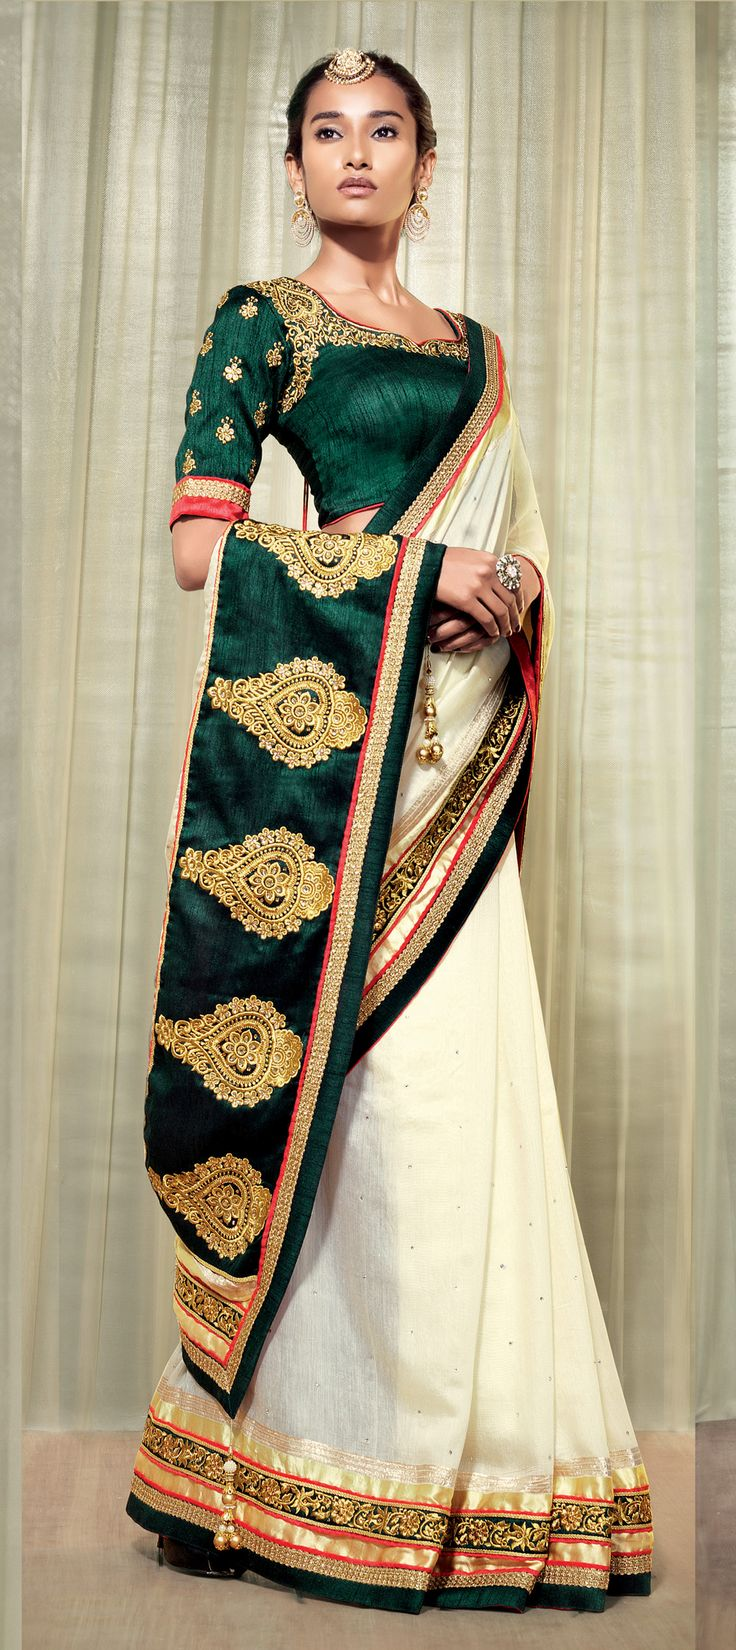 Green and off white color silk saree with blouse. Royal Indian bride style.